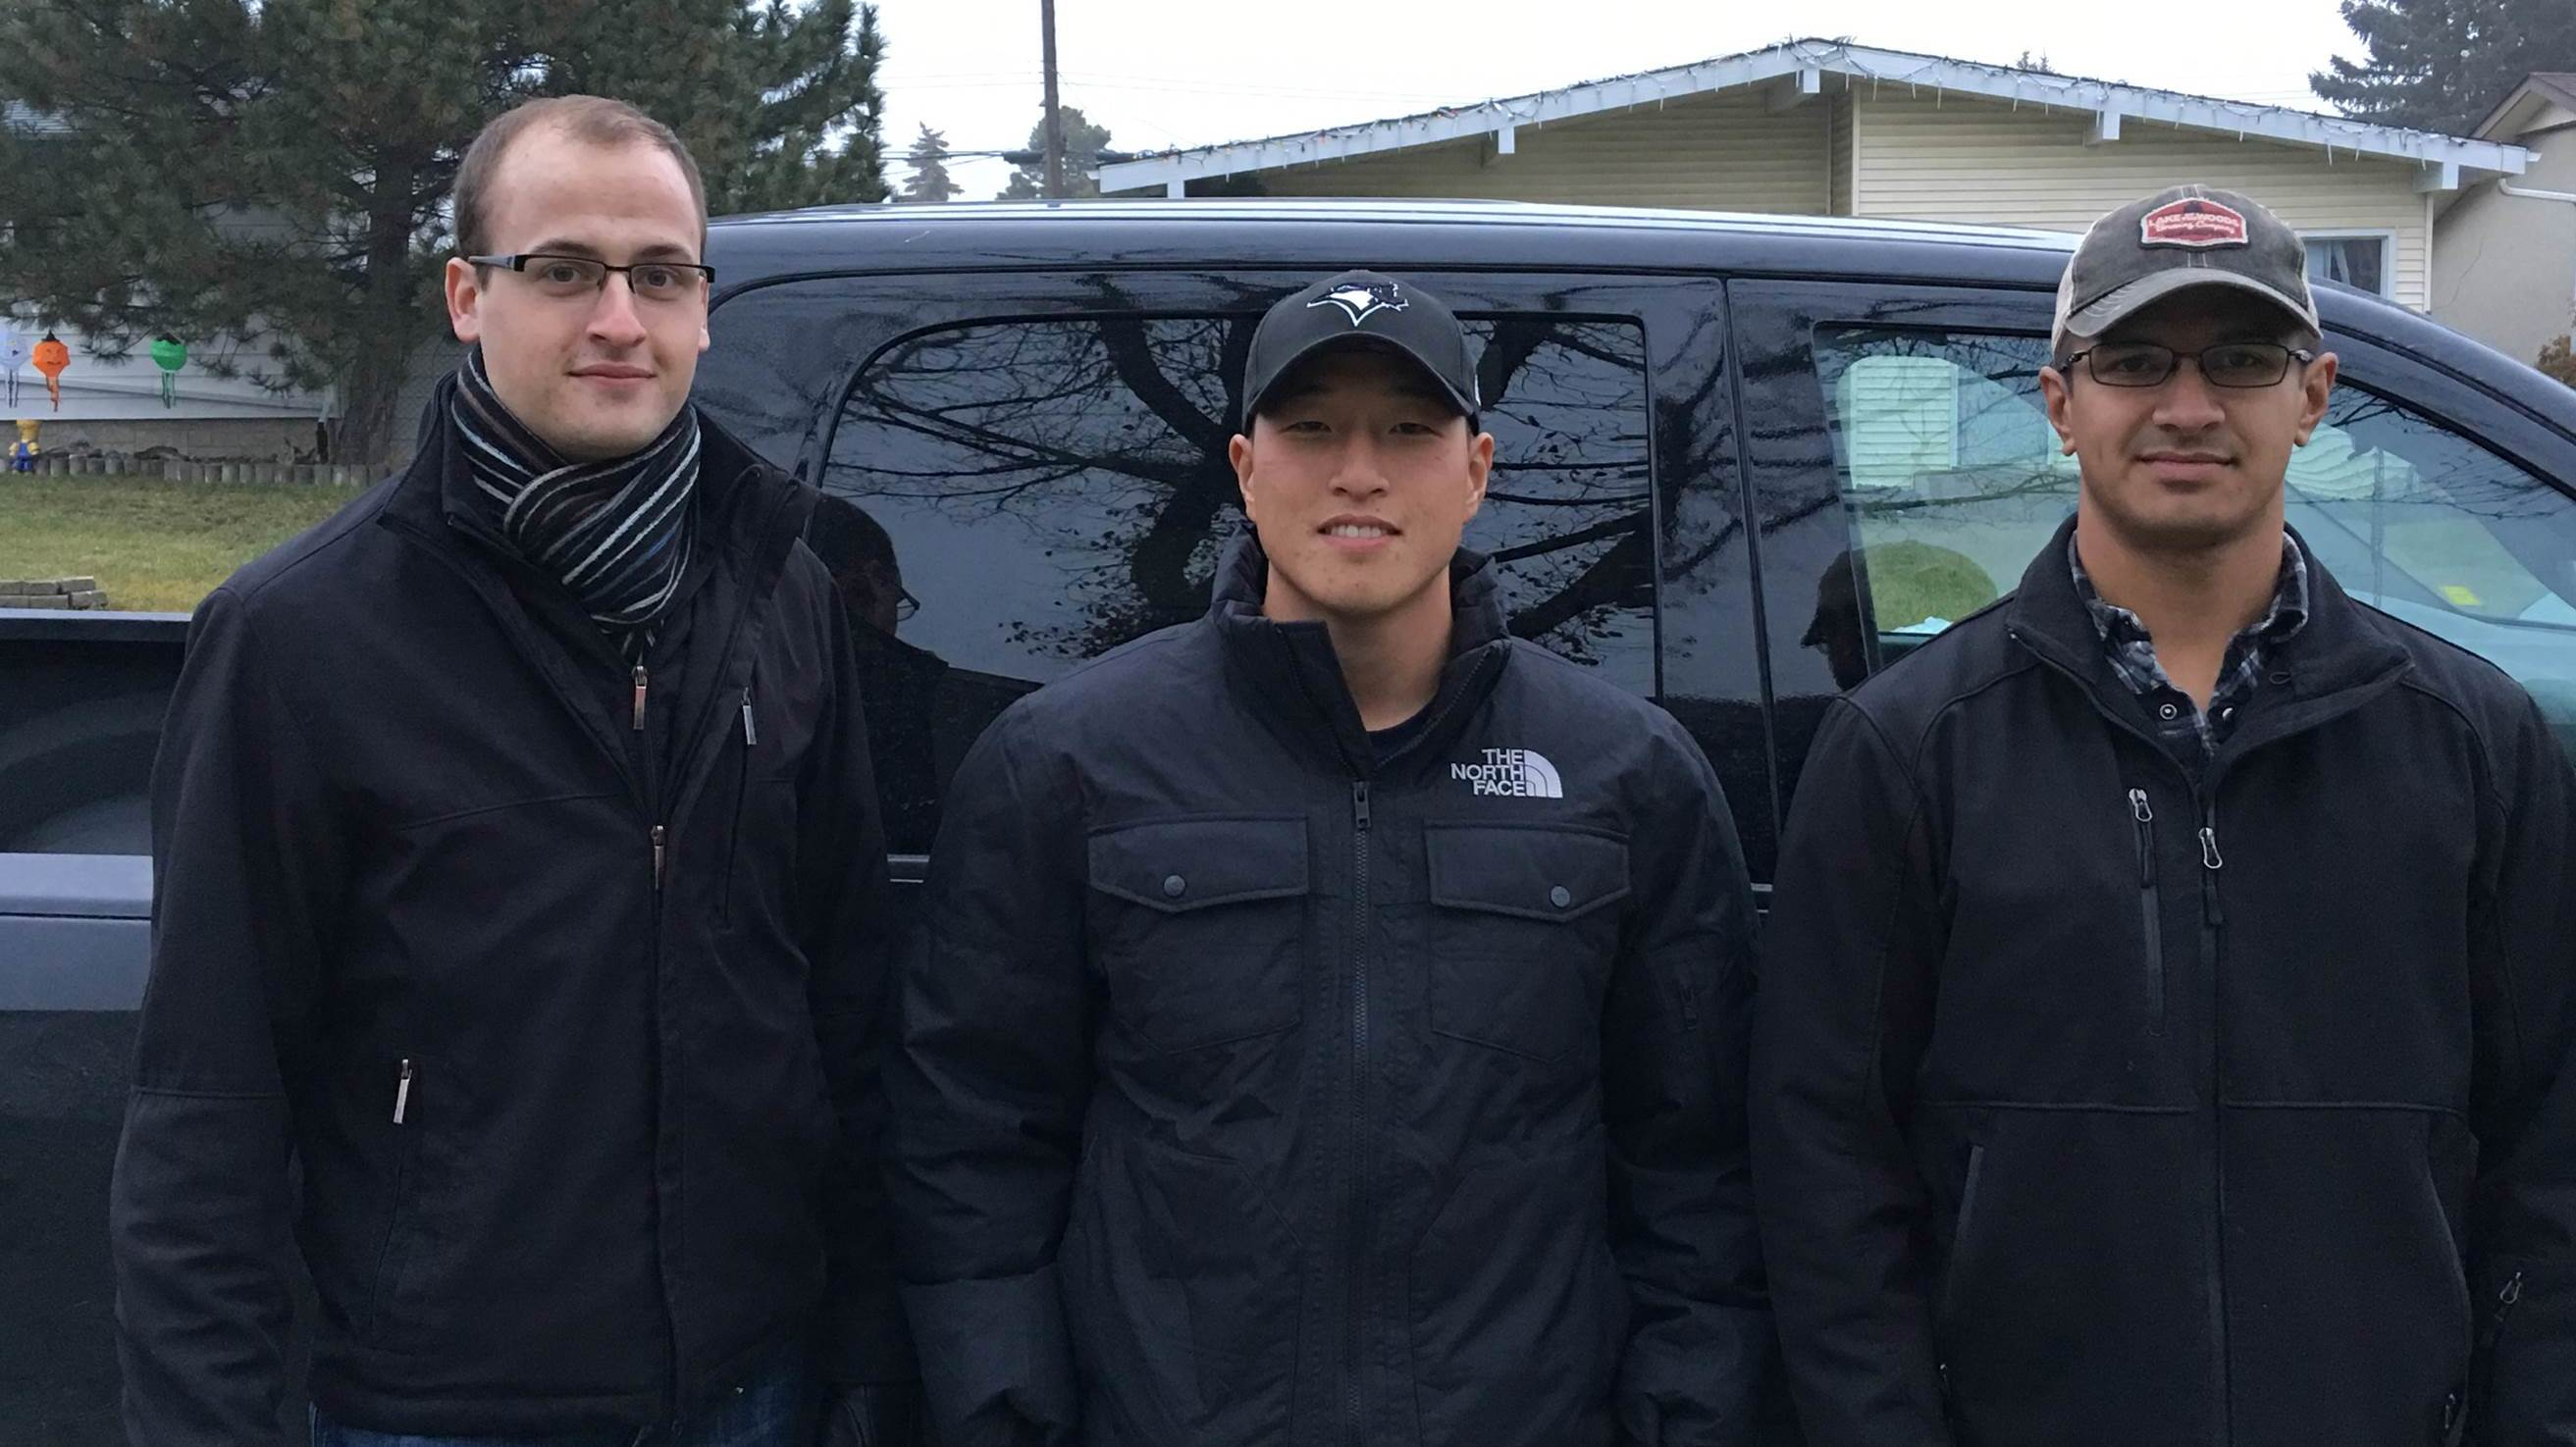 Three men standing in front of a black truck.